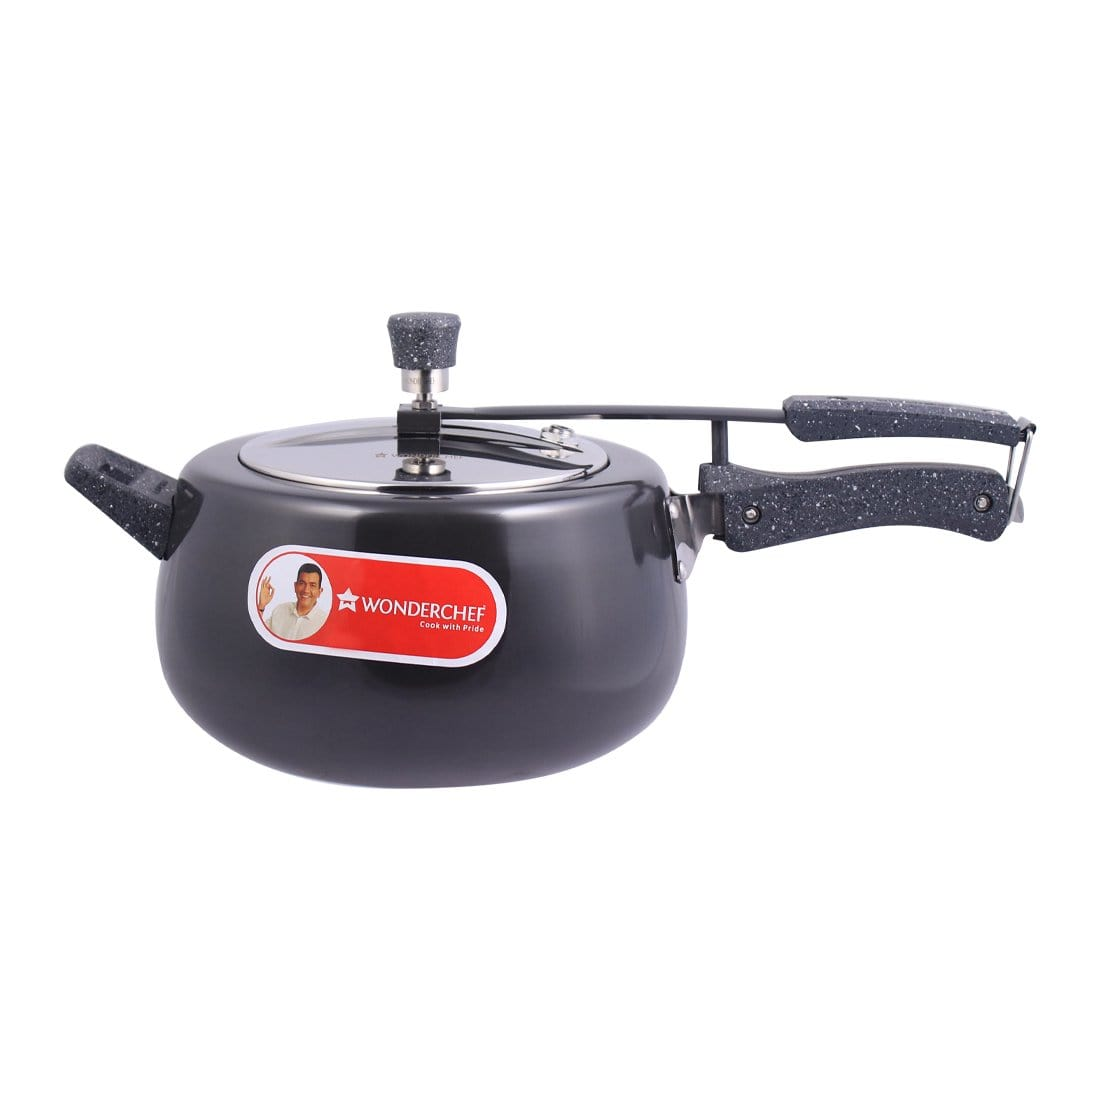 Wonderchef Taurus Hard Anodized Pressure Cooker (5 Litre)